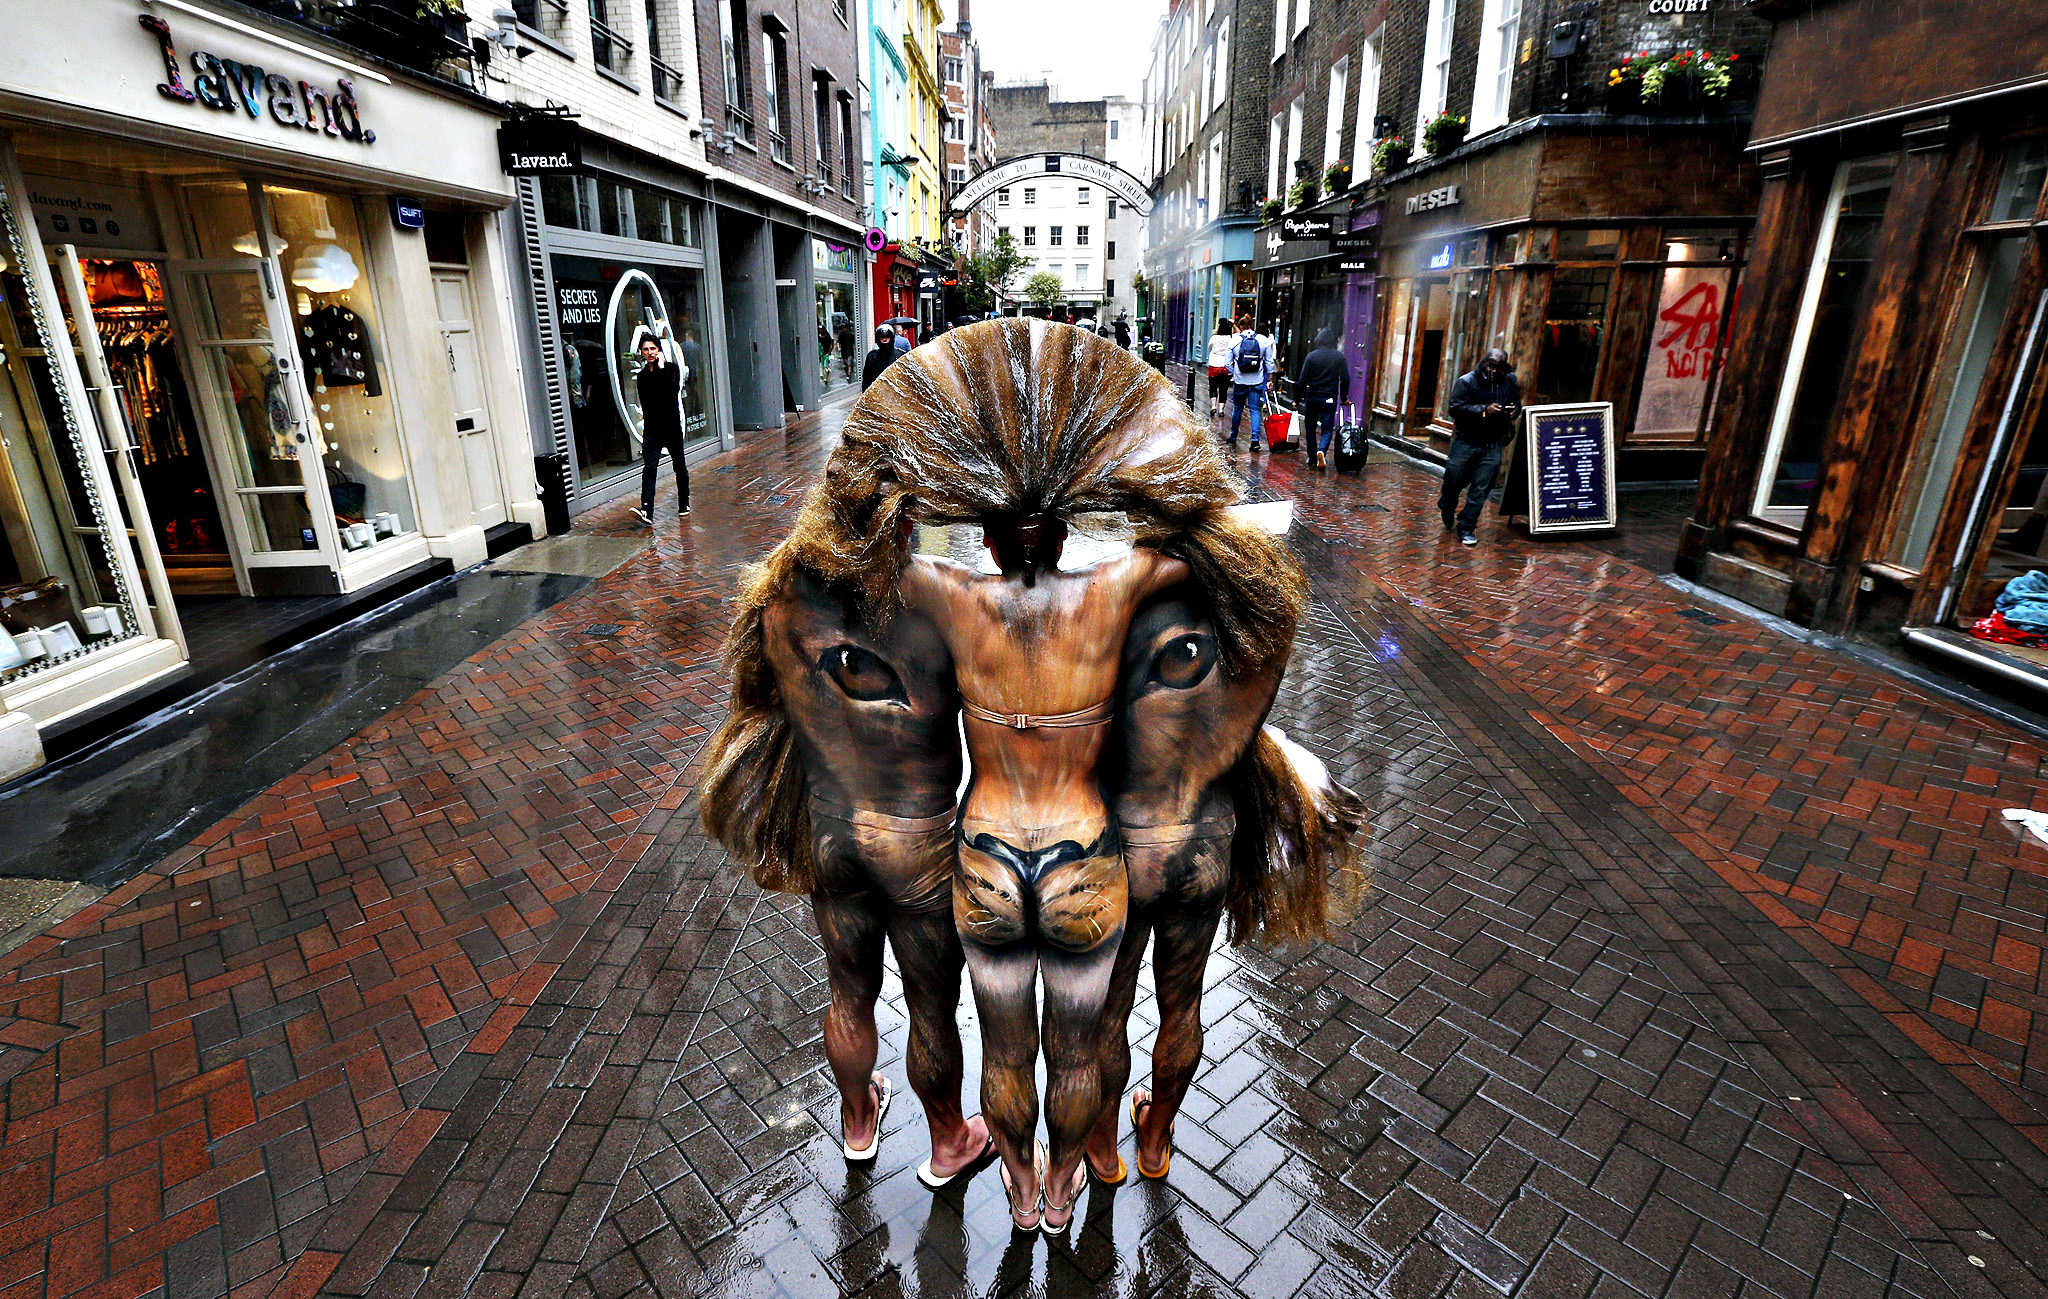 Hand-painted models depicting a lion's head, pose for the photographers during a photo-op in central London's Carnaby Street, Tuesday, June 3, 2014. It was part of events marking the opening of the Zoological Society of London(London Zoo) first ever pop-up shop on the famous street, part of the Lions400 campaign to expose the plight of the endangered Asian lion.